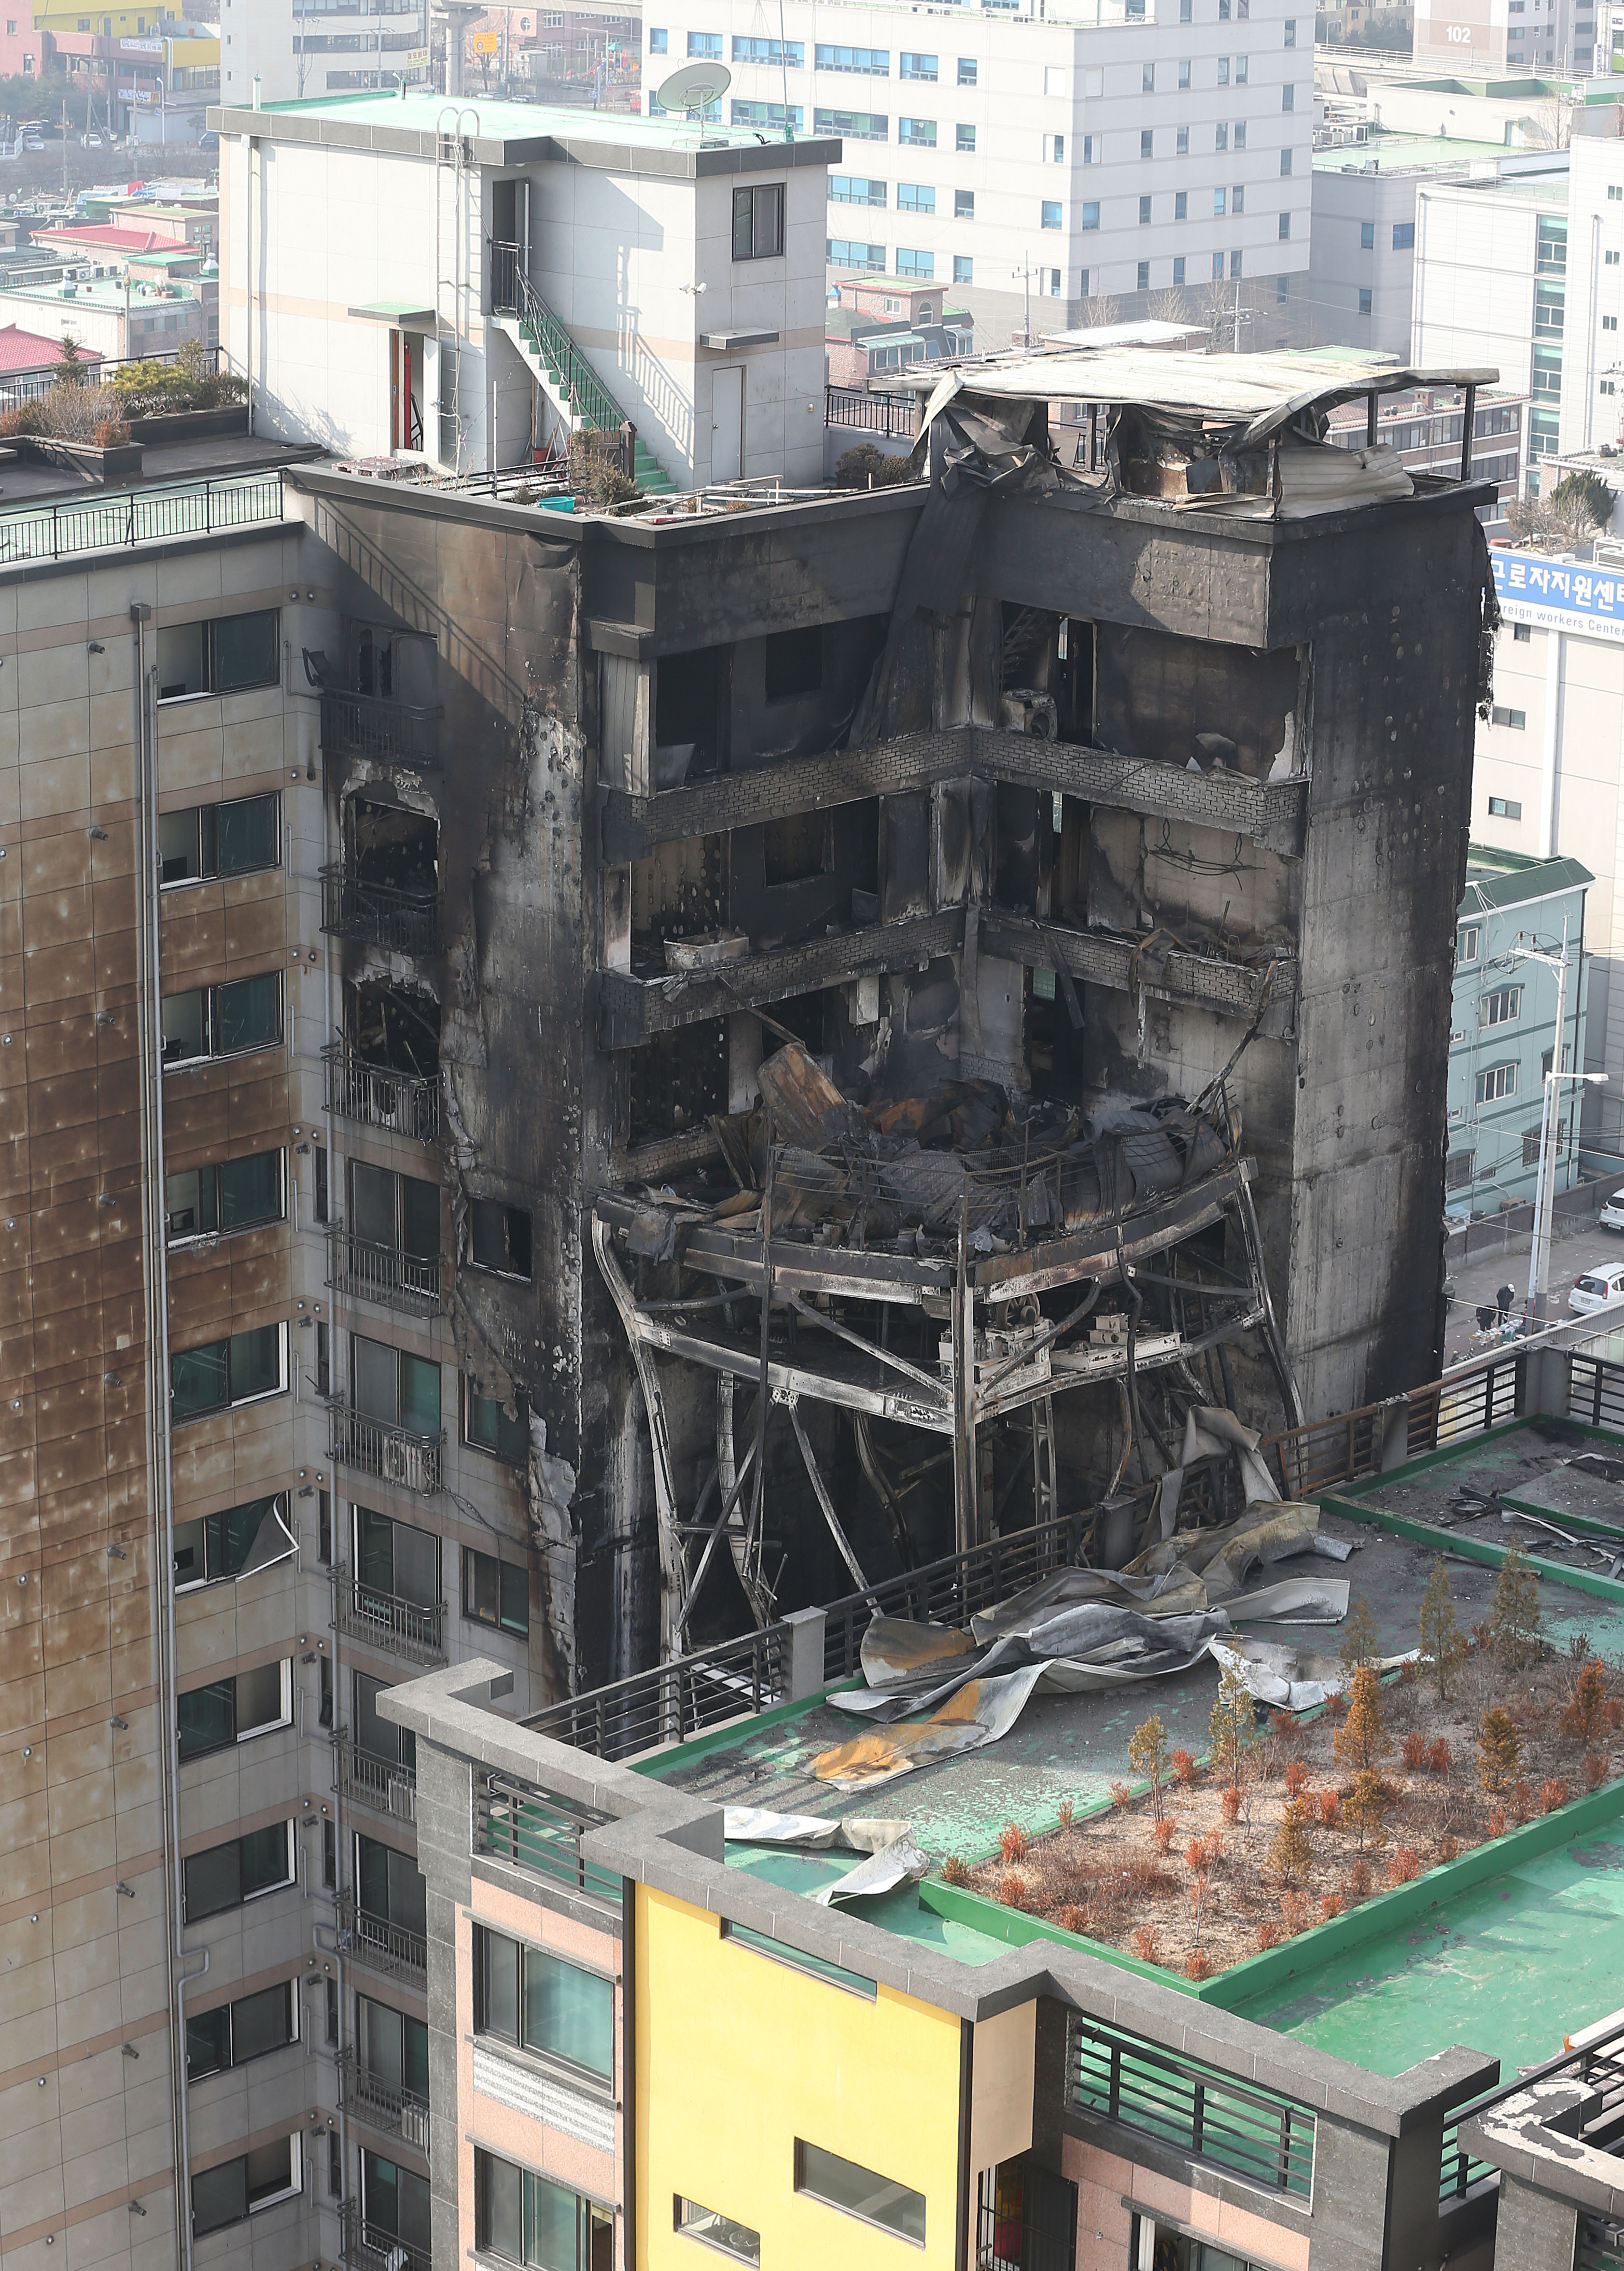 4 Dead 100 Injured In Apartment Building Fire Uijeongbu